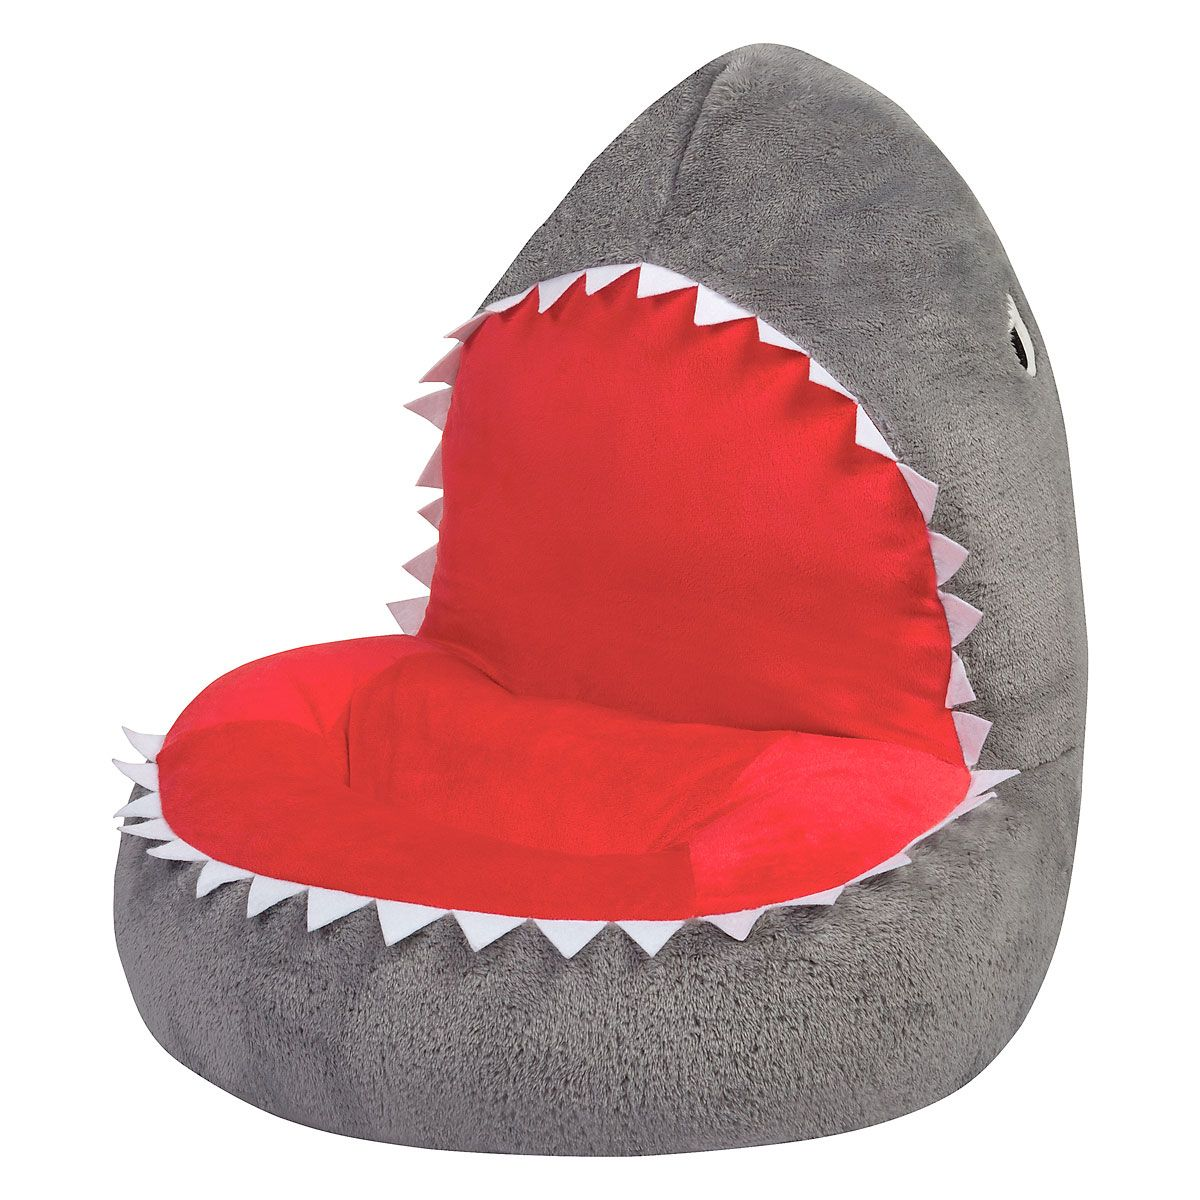 Shark Children's Plush Chair The Shark Plush Character Chair brings delightful whimsy to your little one's world and to any room of the house. Perfect for reading, relaxing, snuggling. Soft outer surface is ideal for cuddling and hugging. Measures 21  x 19  x 19  with contoured support. 100% polyester plush with 100% polyester fill. Spot clean only; use a damp cloth. Suitable for most children ages 12 months and up. Standard shipping only. Expedited shipping not available. Cannot be sent outside the 48 contiguous states, or to P.O. Box, APO/FPO, or foreign addresses.